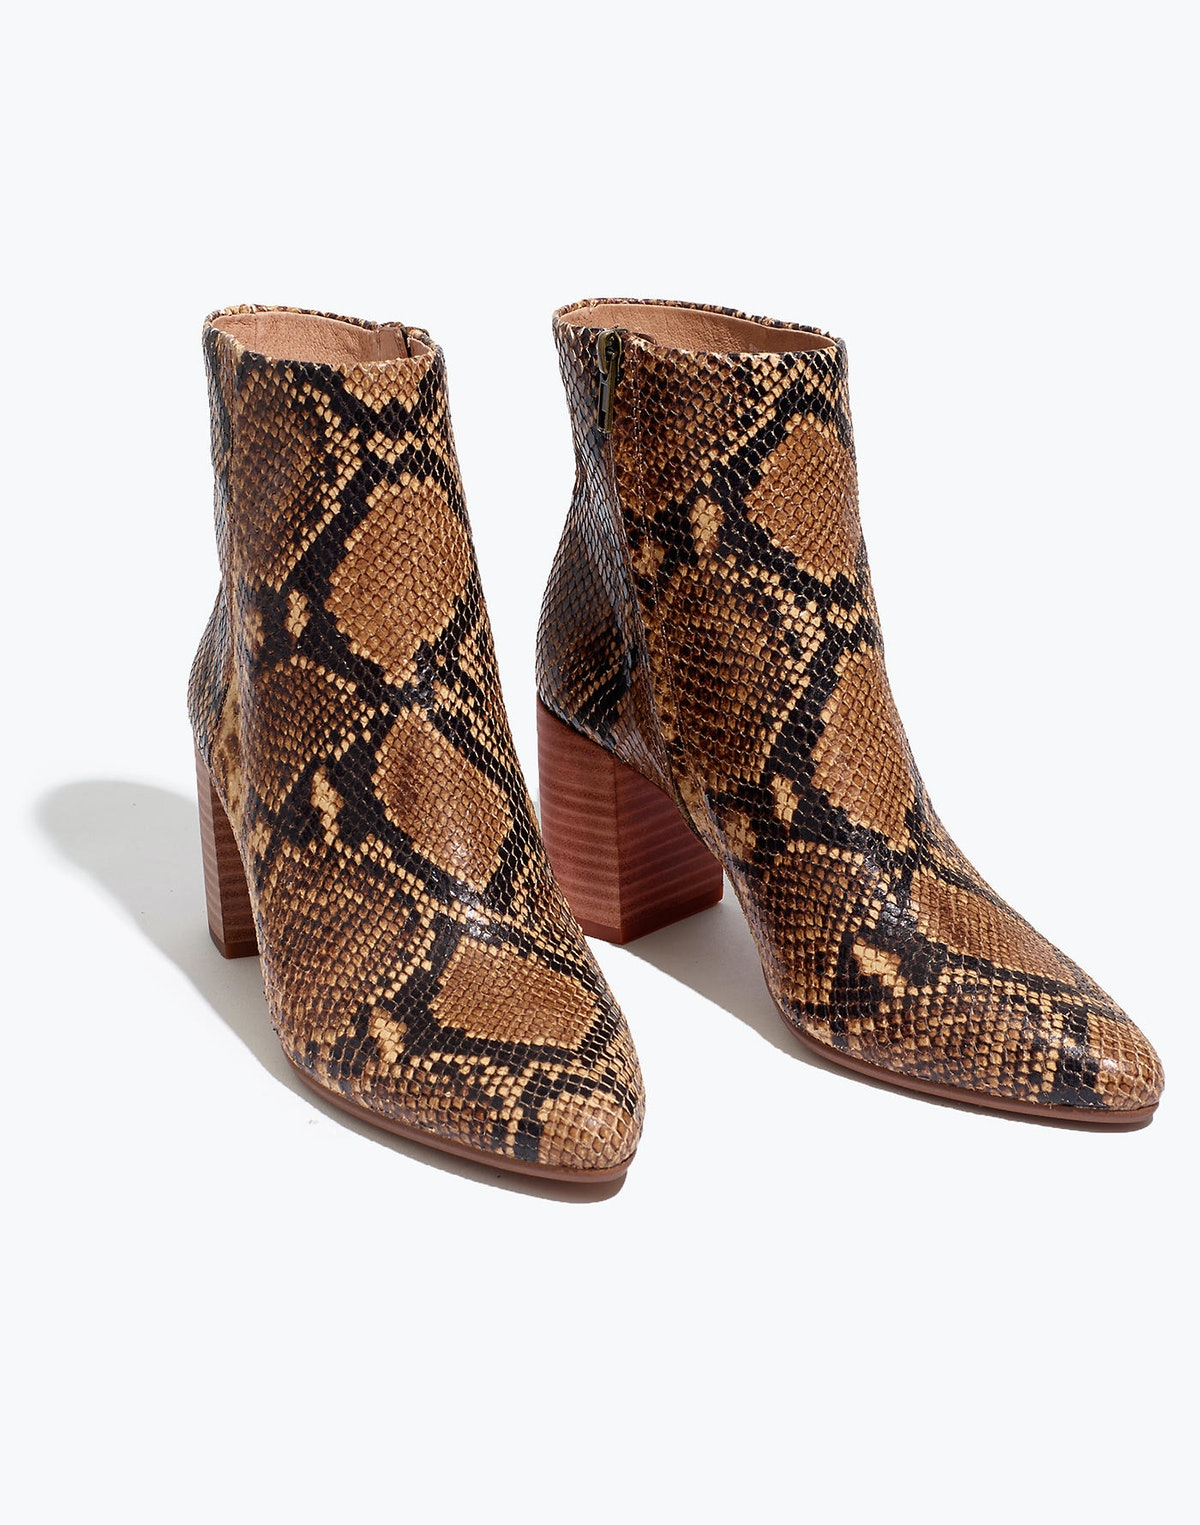 The Fiona Boot in Snake Embossed Leather